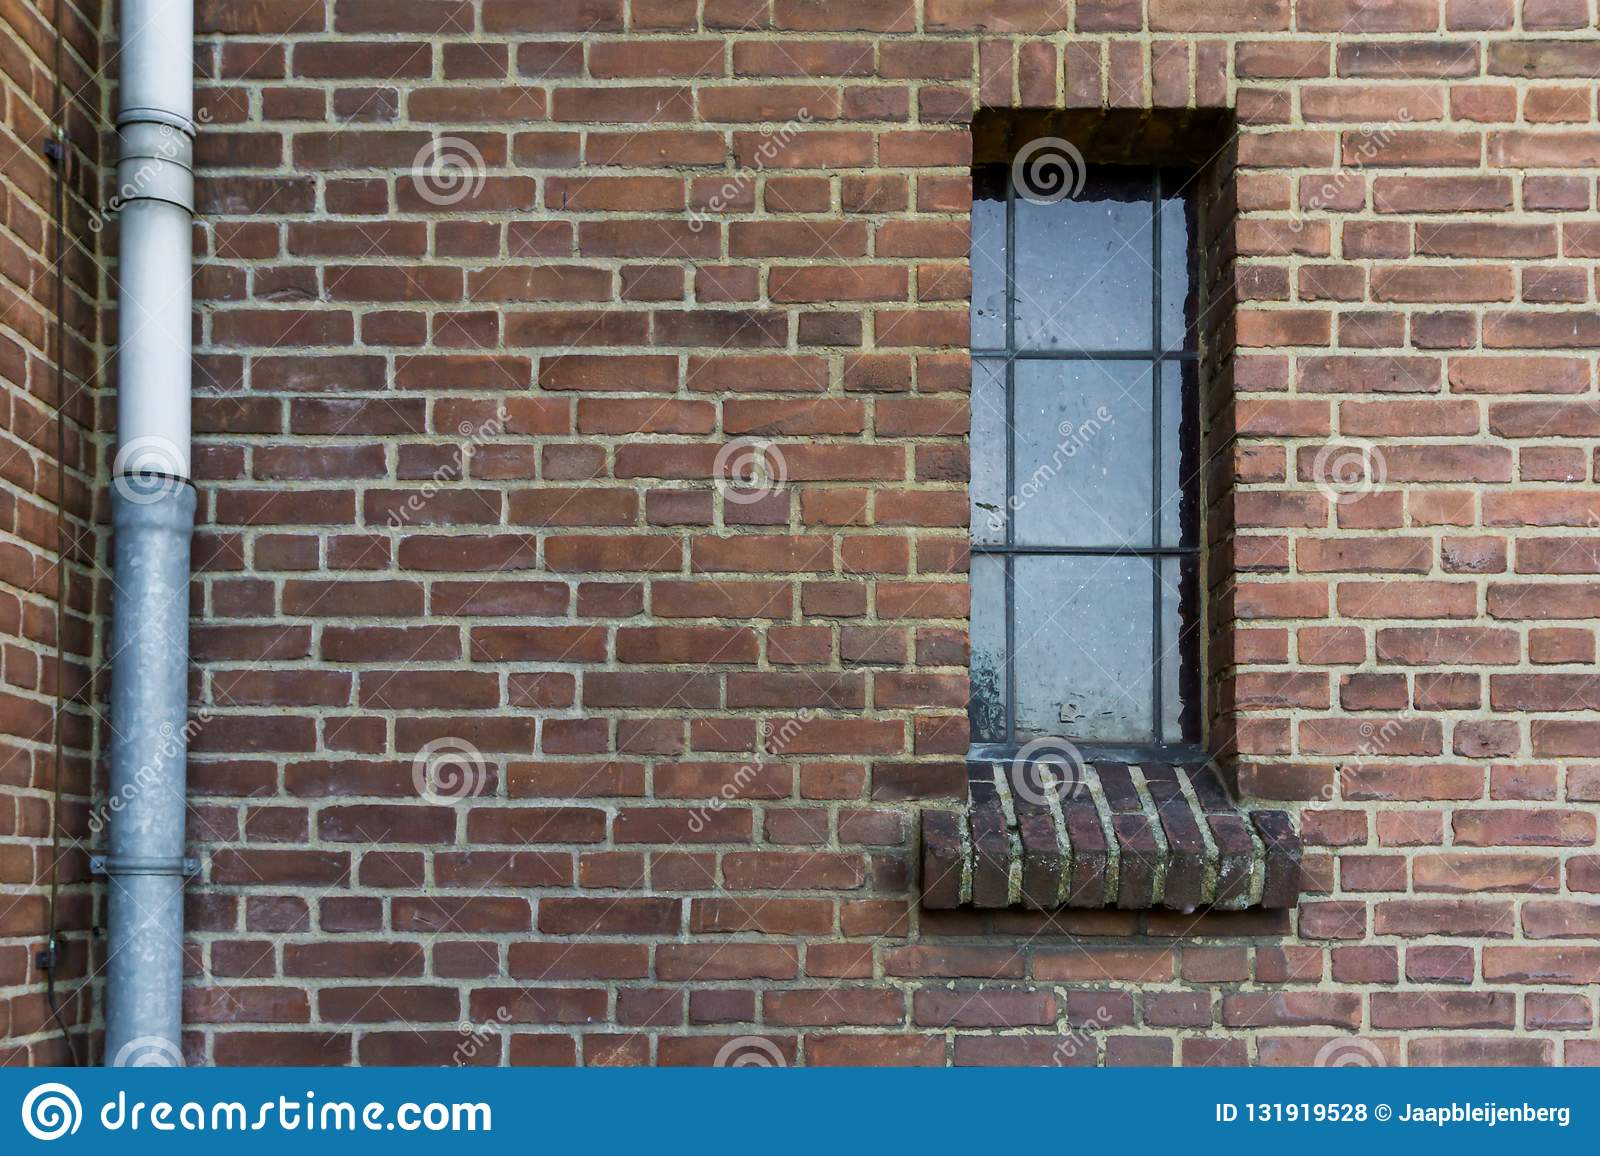 Stone brick wall pattern with a old dirty glass window framework in stained glass retro architecture background